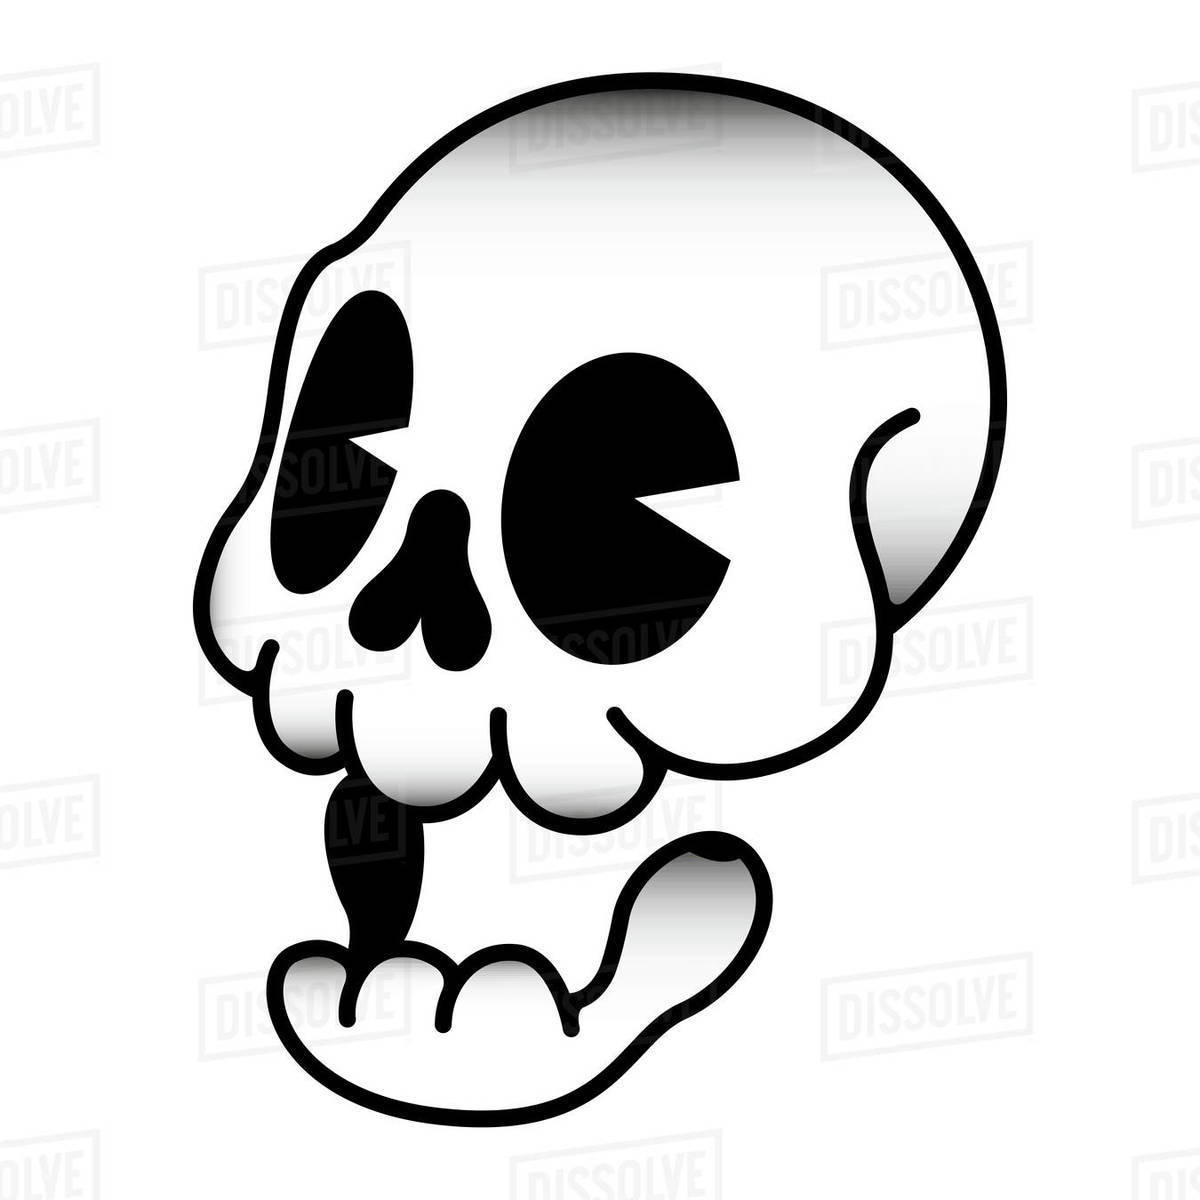 Illustration of skull against white background Royalty-free stock photo